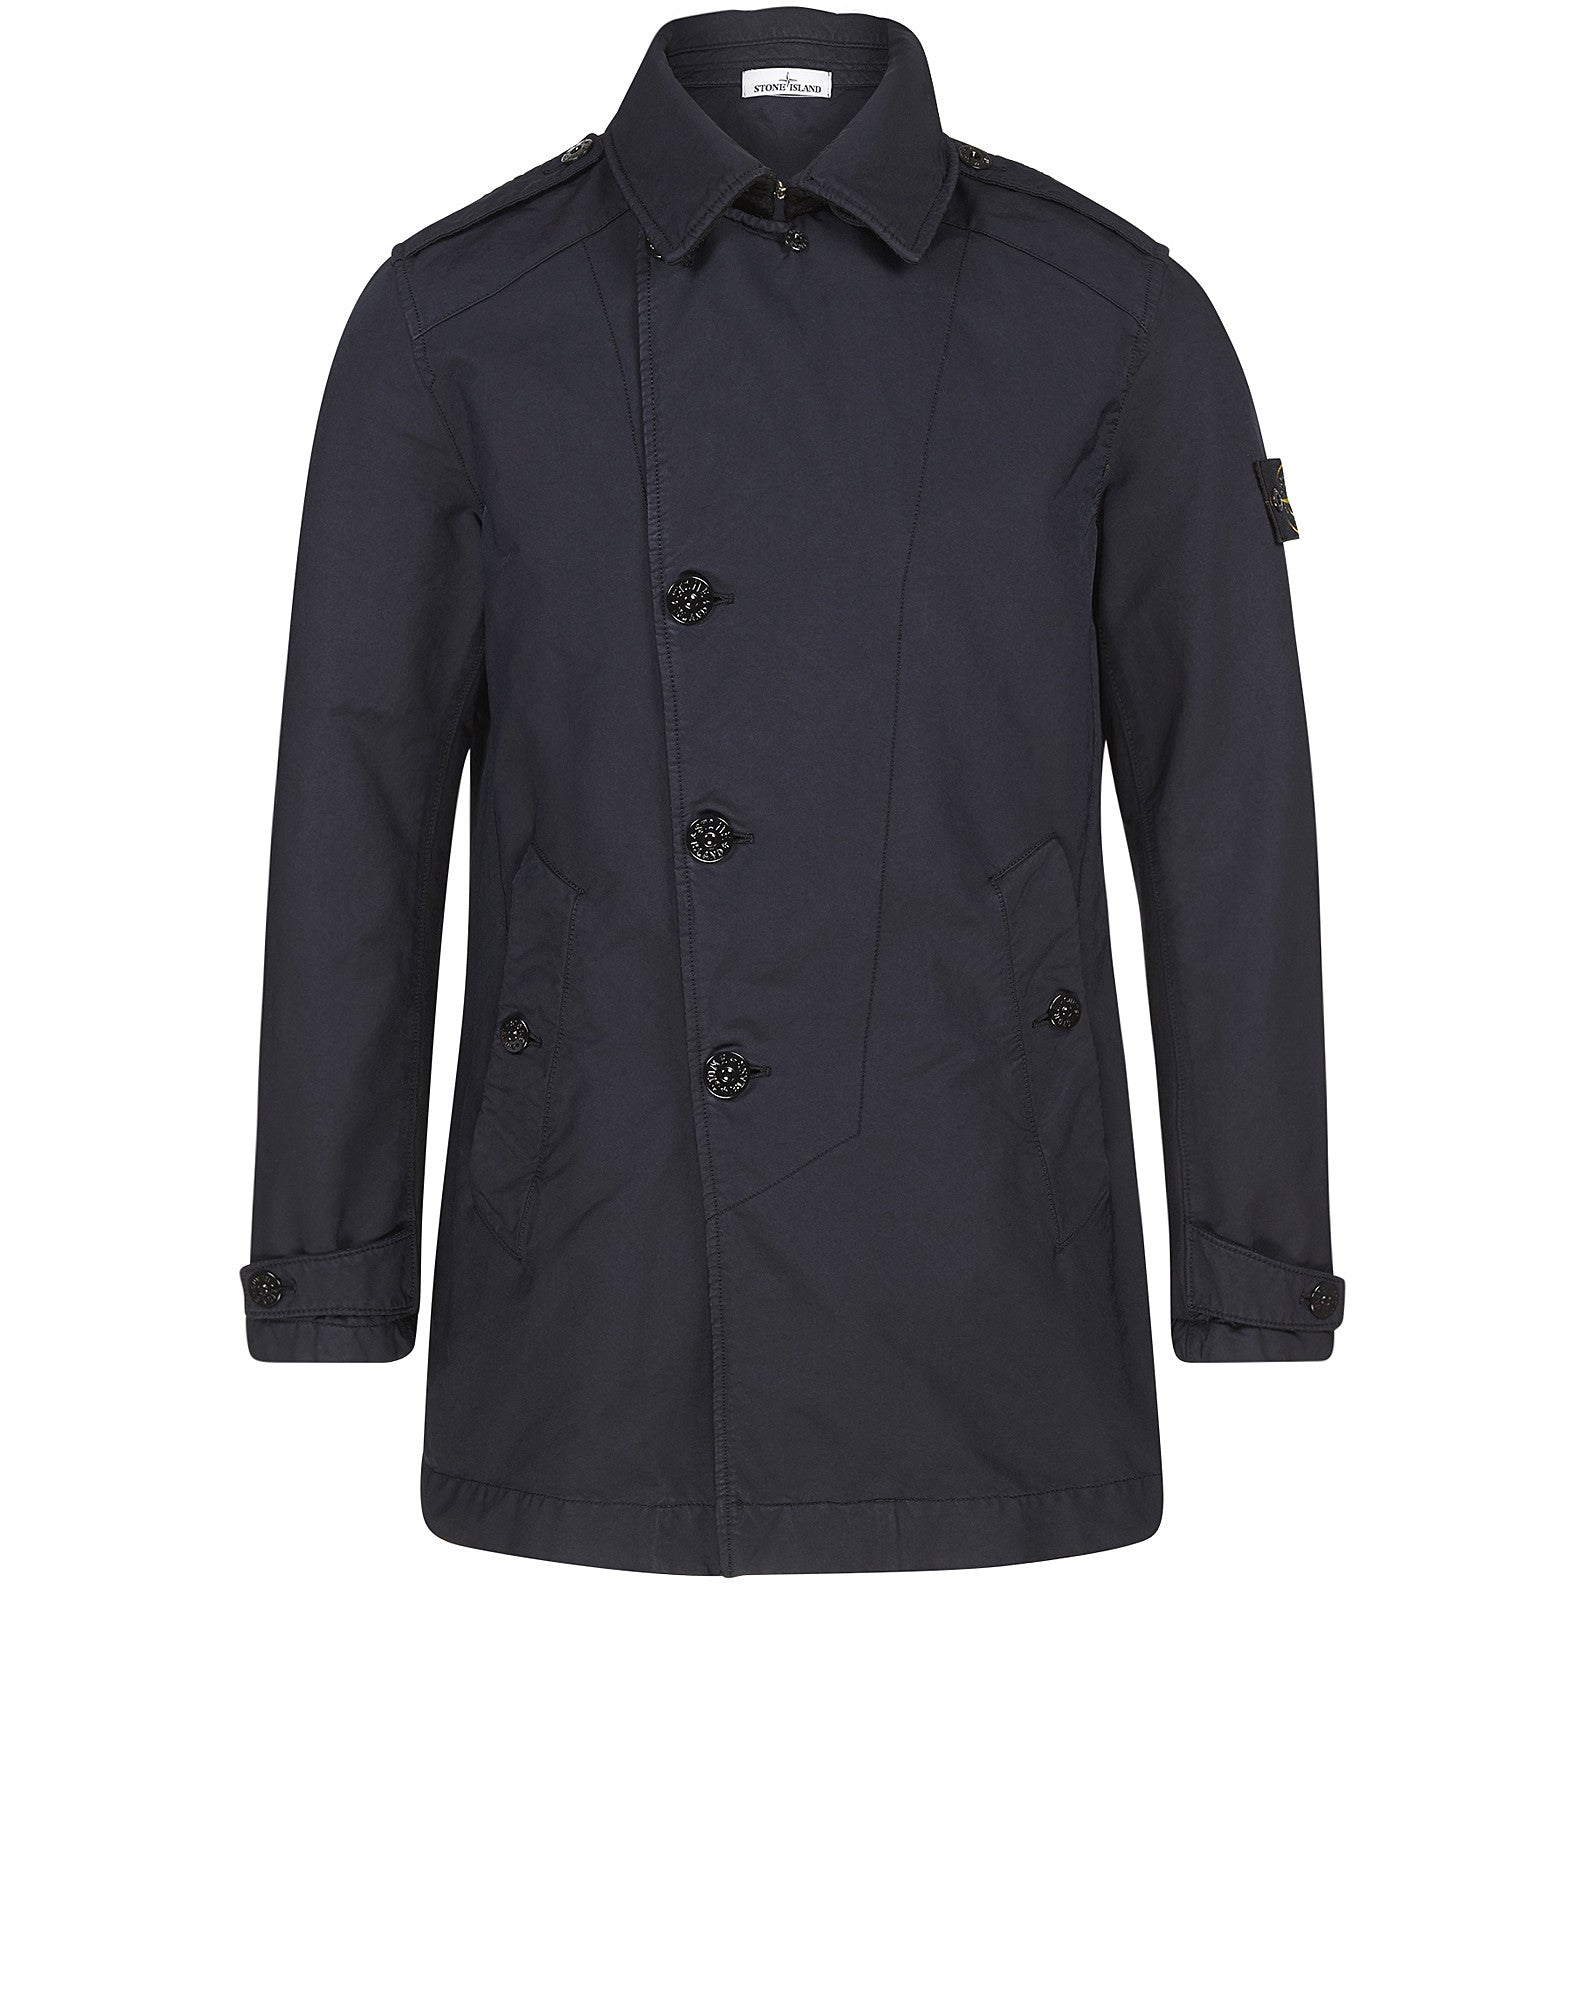 45249 DAVID-TC Jacket in Blue